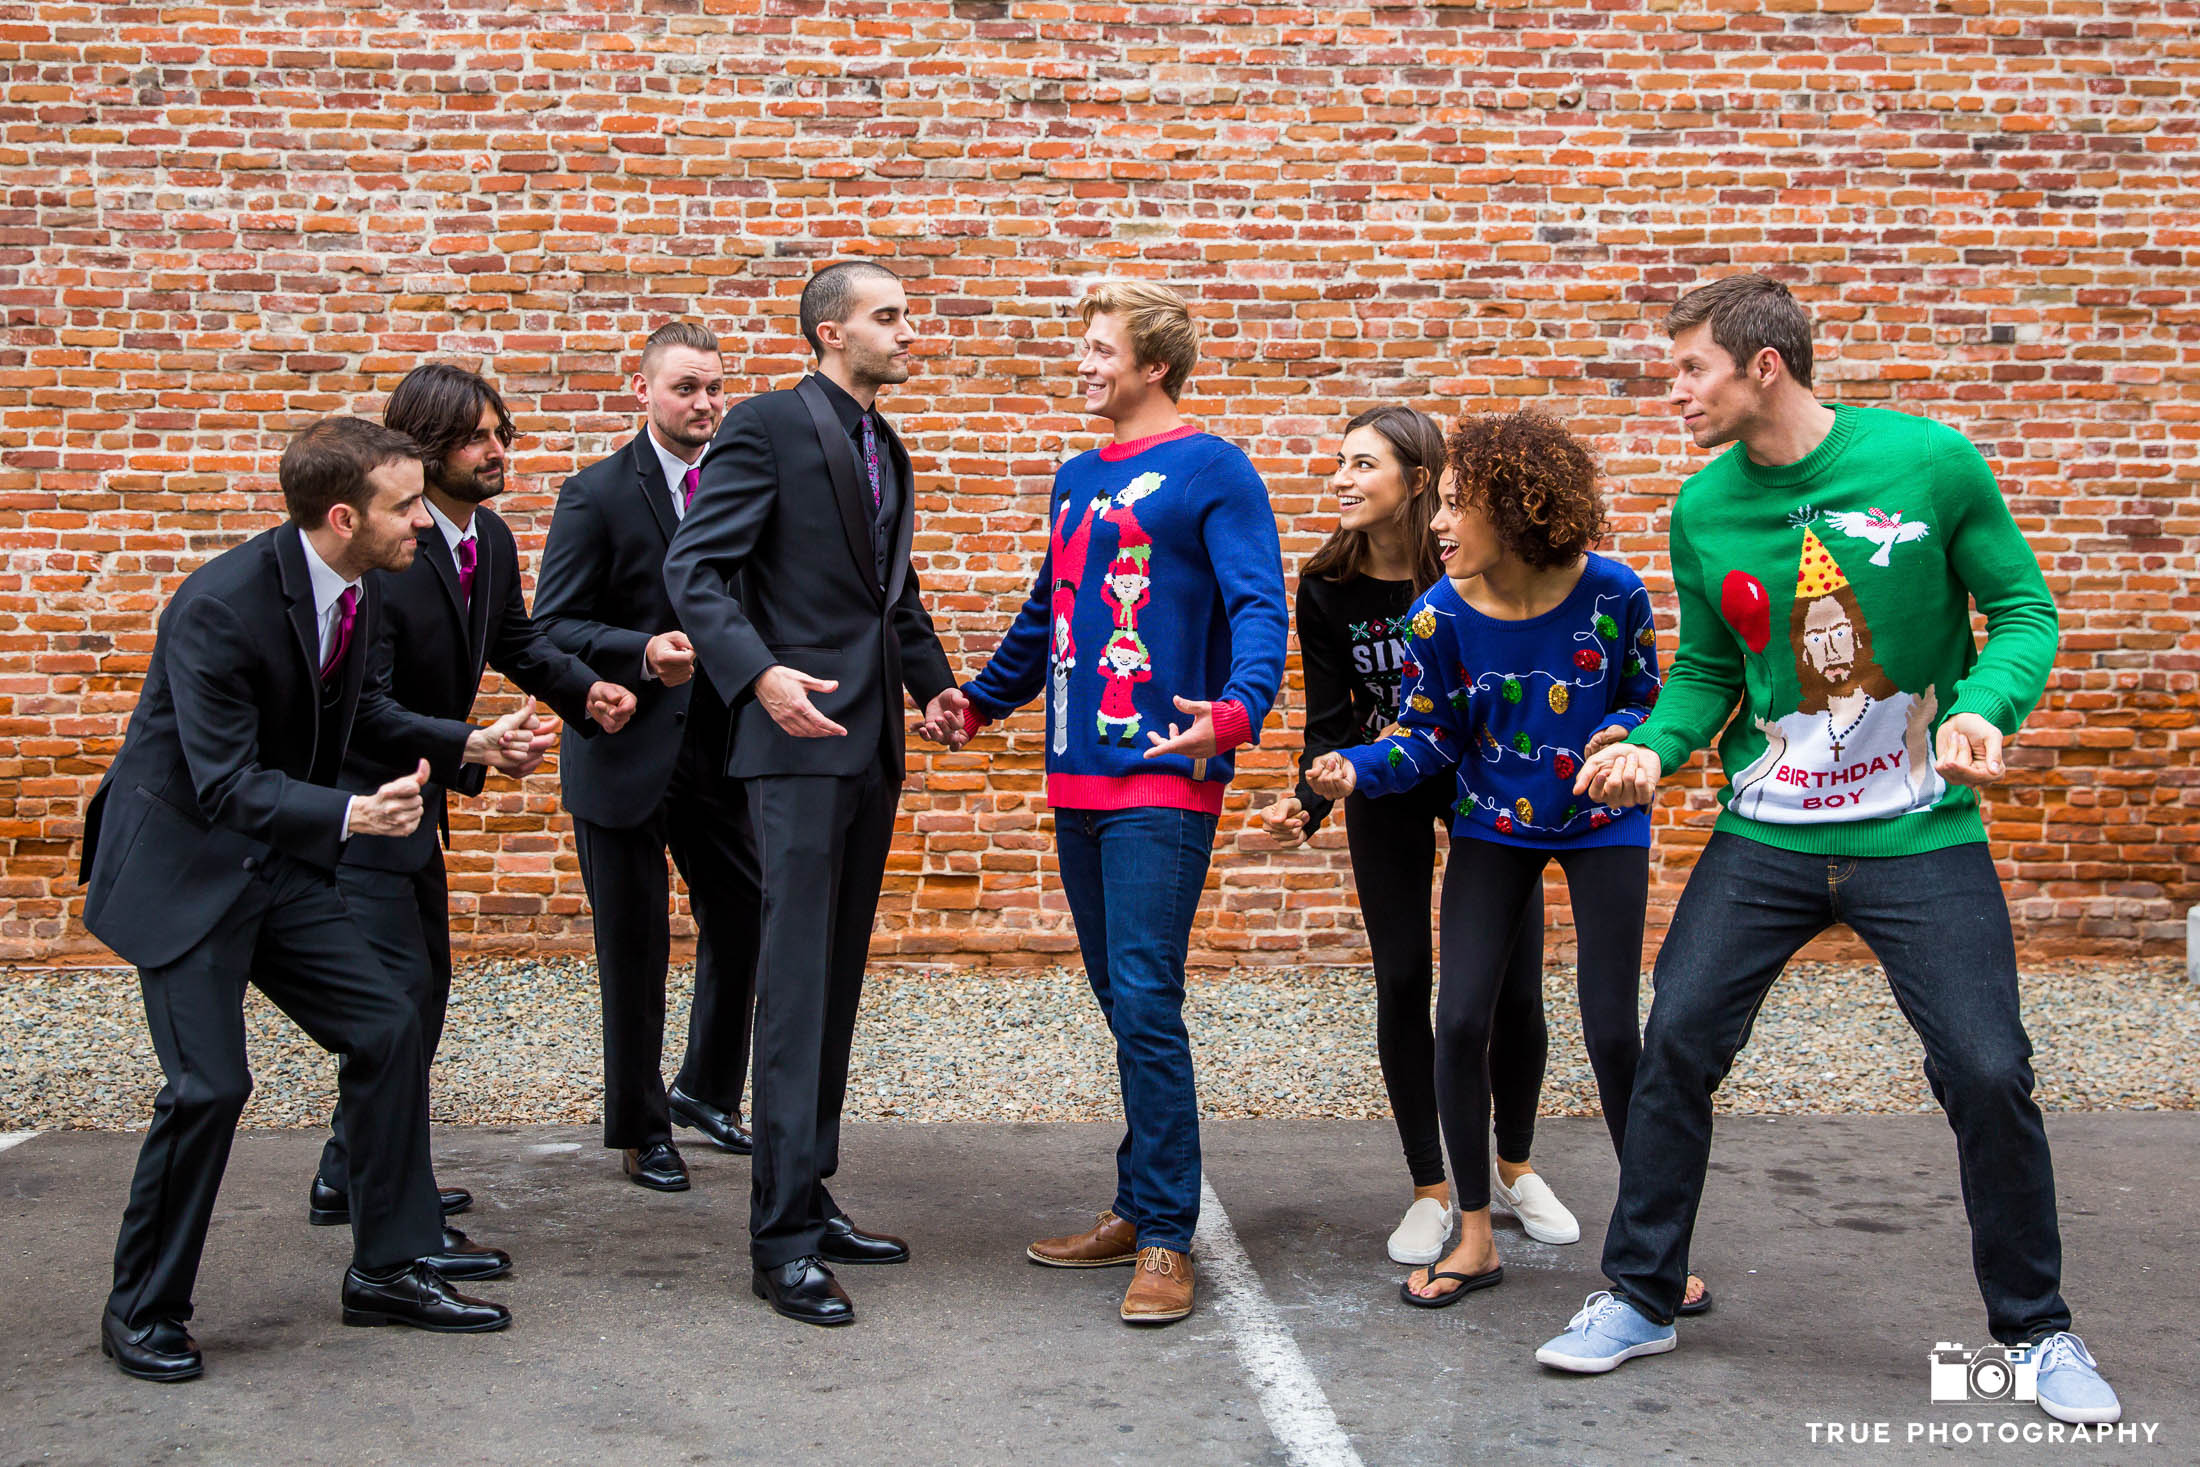 Groom and groomsmen snapping fingers in front of brick wall with Tipsy Elves in ugly christmas sweaters